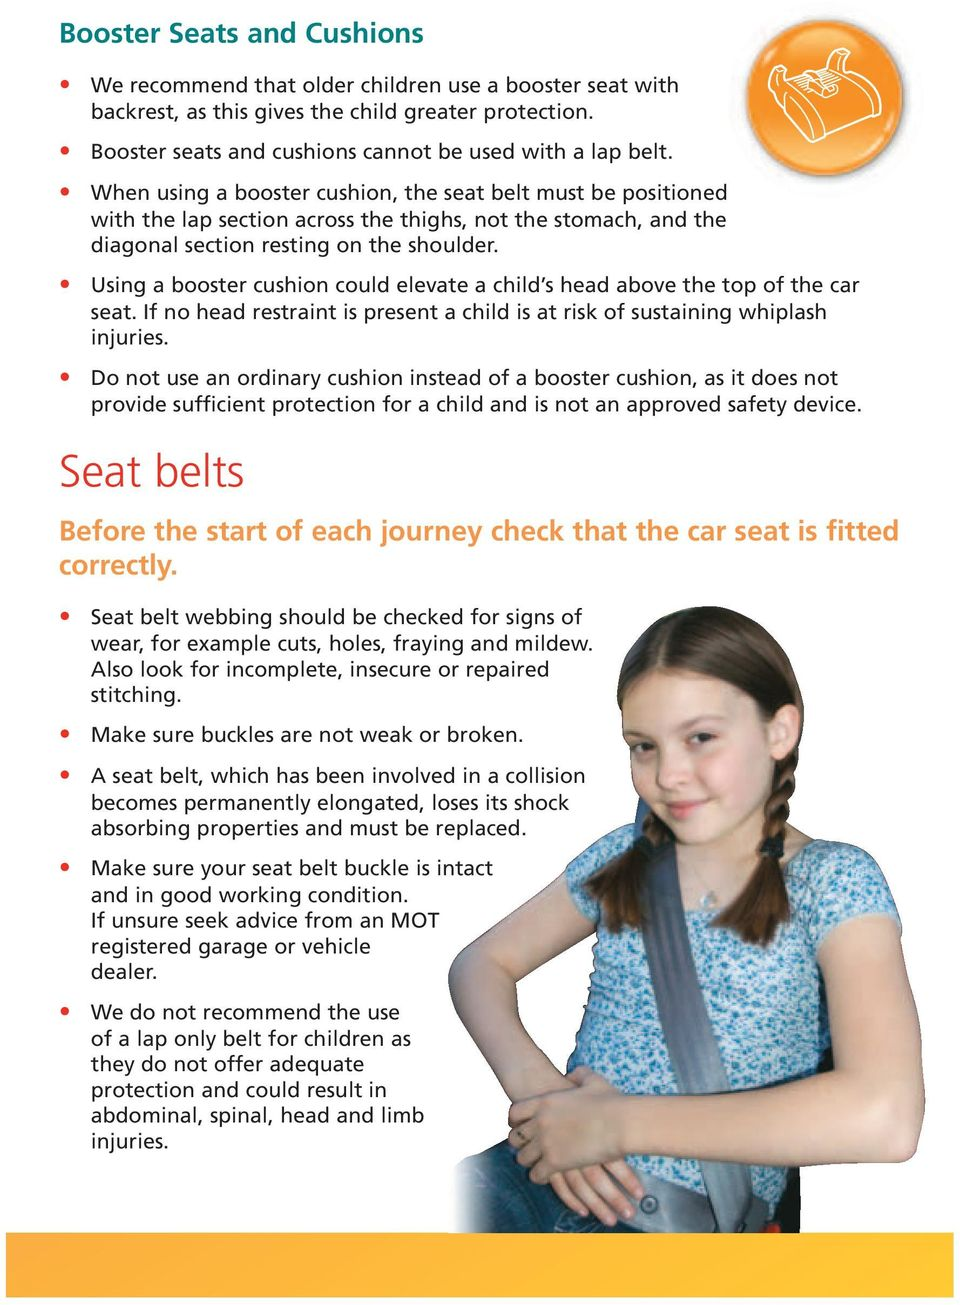 Using a booster cushion could elevate a child s head above the top of the car seat. If no head restraint is present a child is at risk of sustaining whiplash injuries.